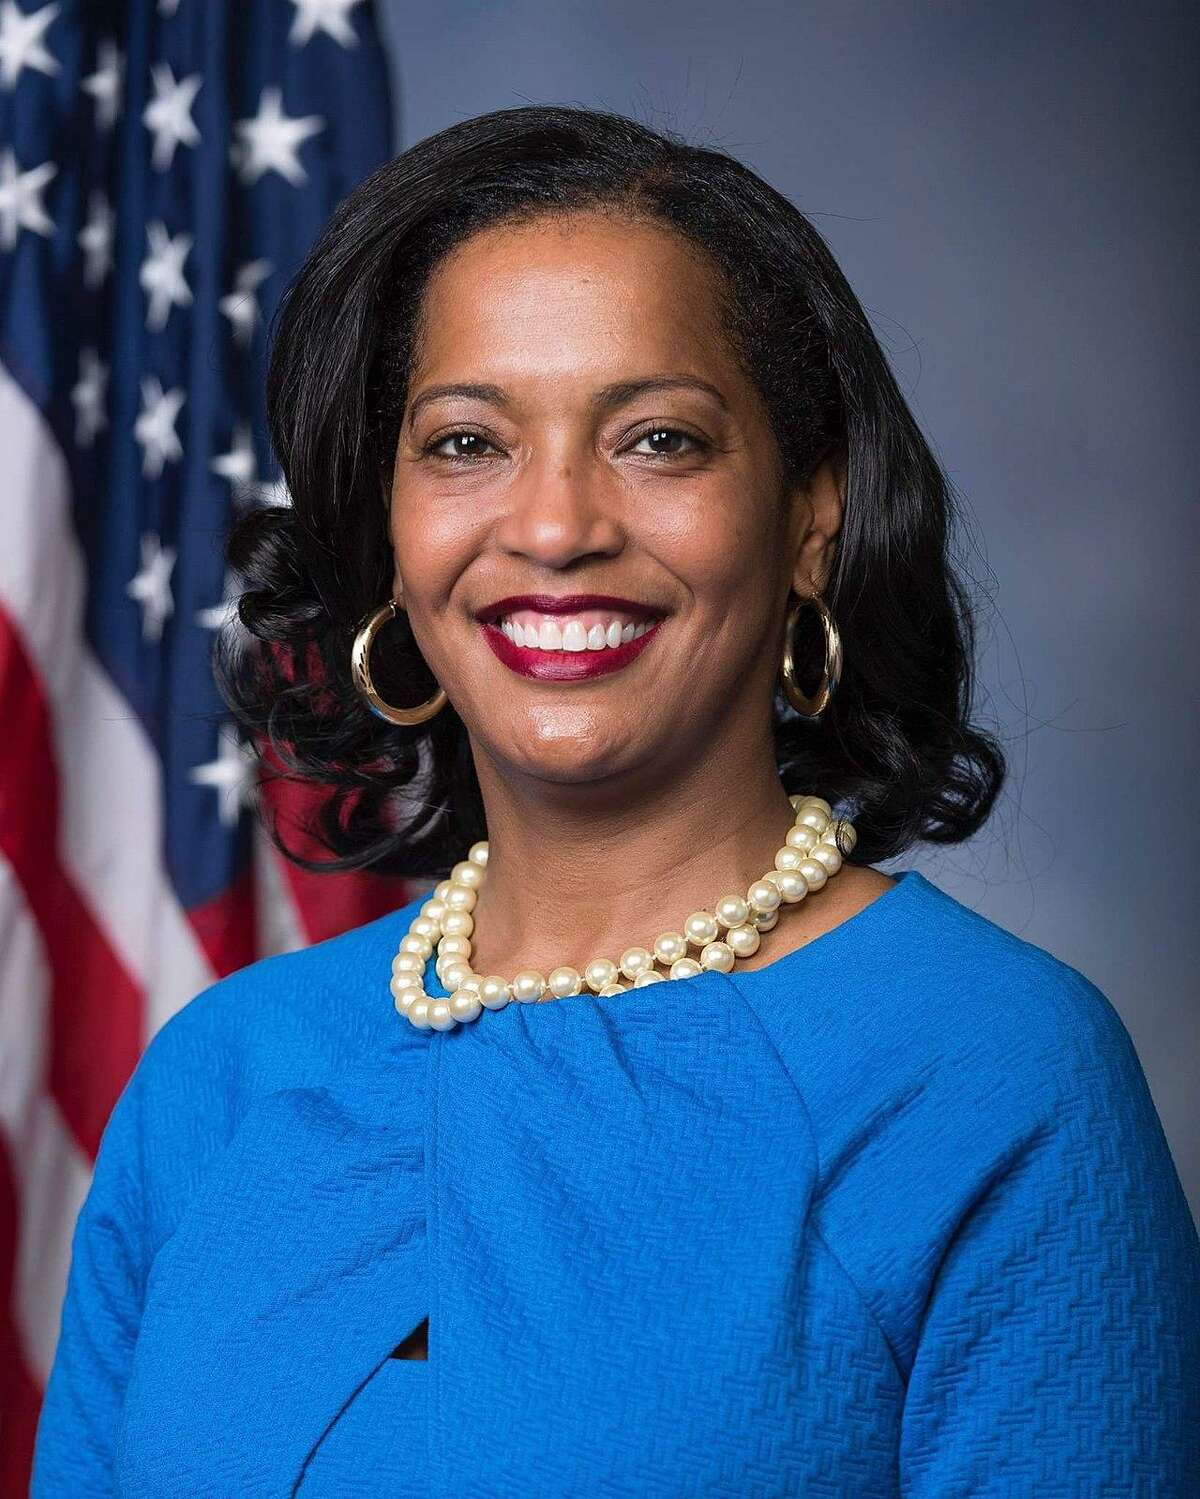 Congresswoman Jahana Hayes, D-5th, will deliver the commencement address at Middlesex Community College in Middletown May 30 at 6 p.m.